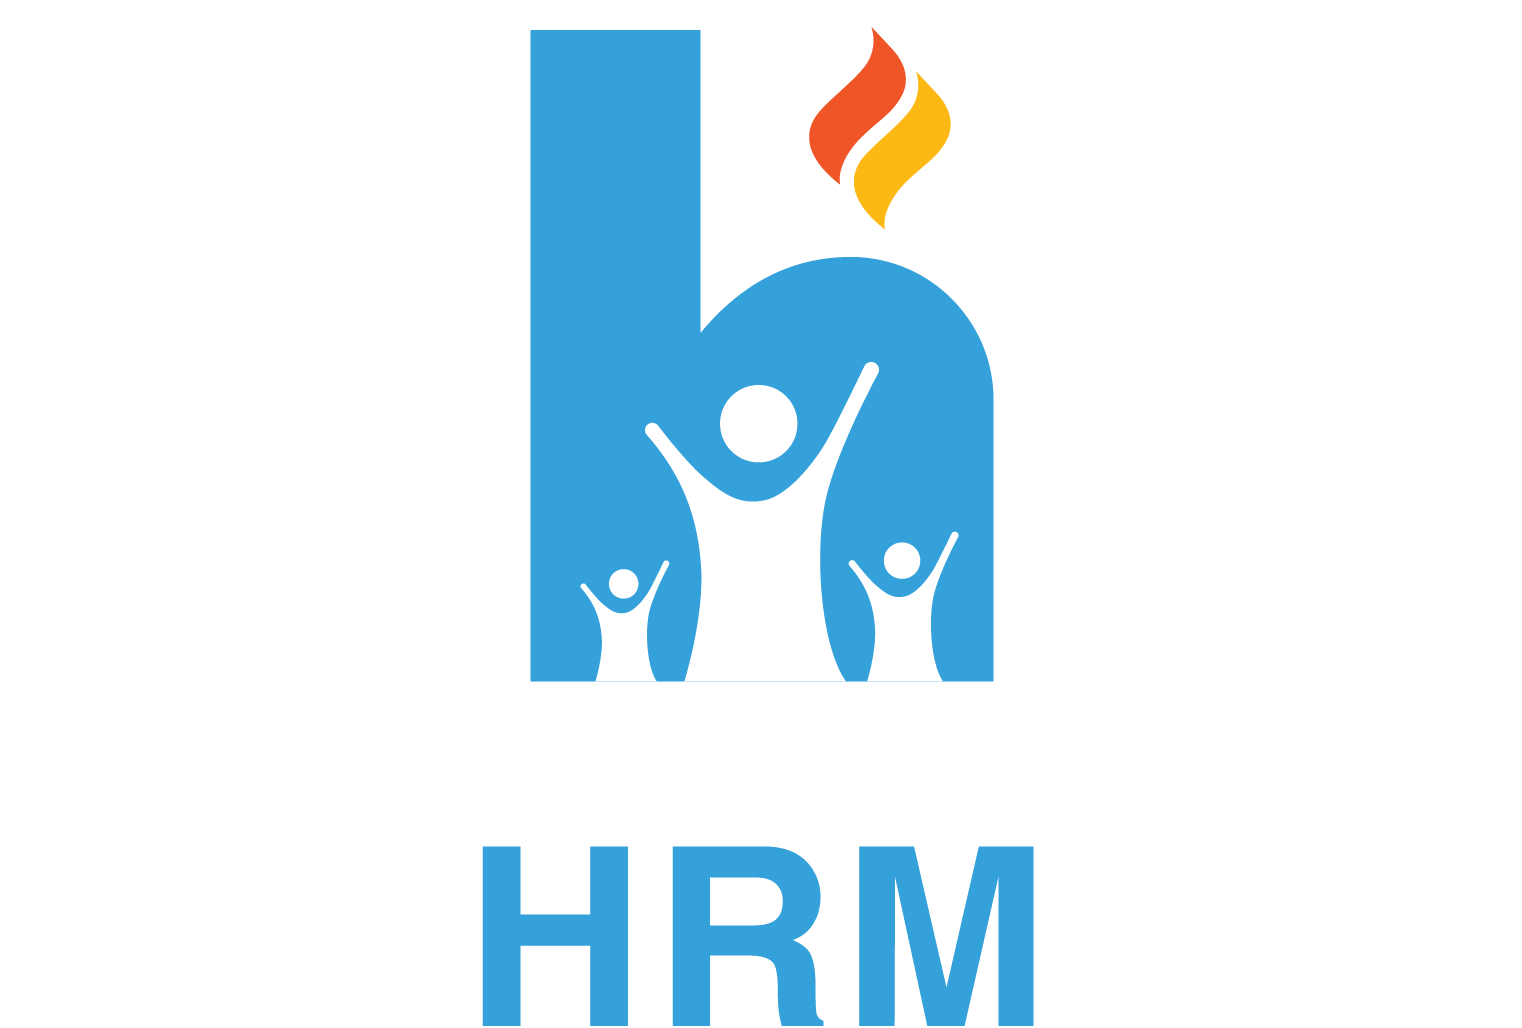 BSC HRM